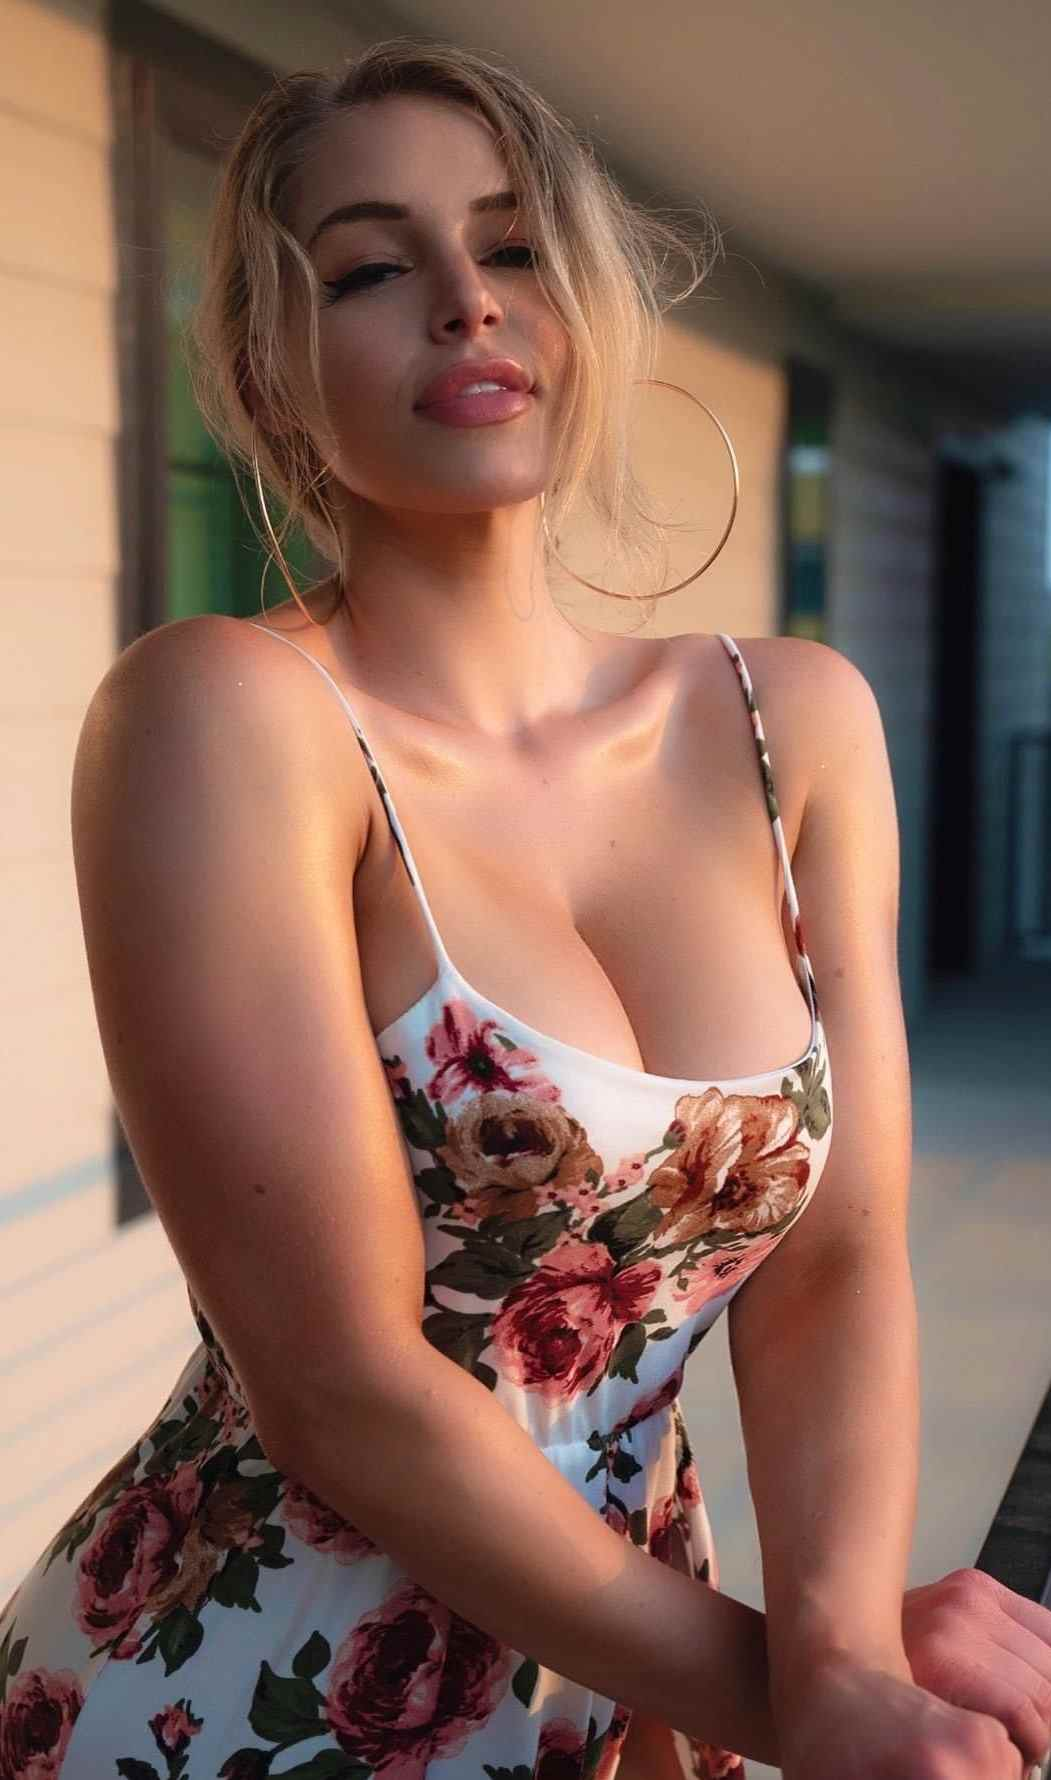 Get Yourself Available At Escort Service Sex In Mumbai And Enjoy Anytime.